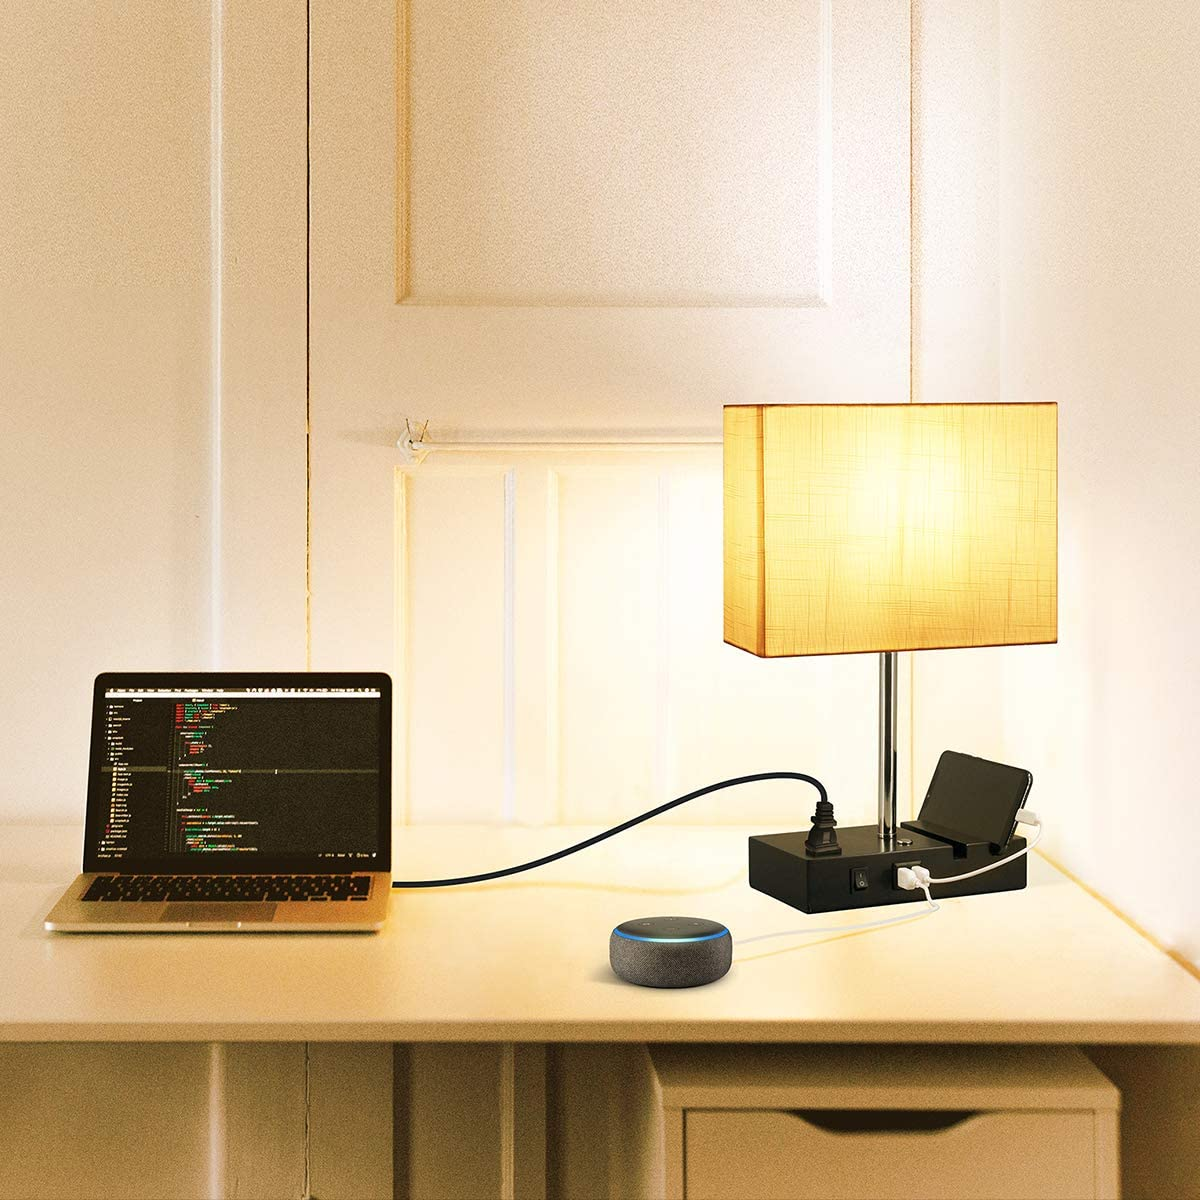 Touch Control USB Table Lamp Suitable for Nightstand Bedroom Lamp White Shade 3-Way Dimmable Table Lamp with 2 Useful USB Ports /& One Outlet 2700K 800LM Bulb Included with the Modern Table Lamp